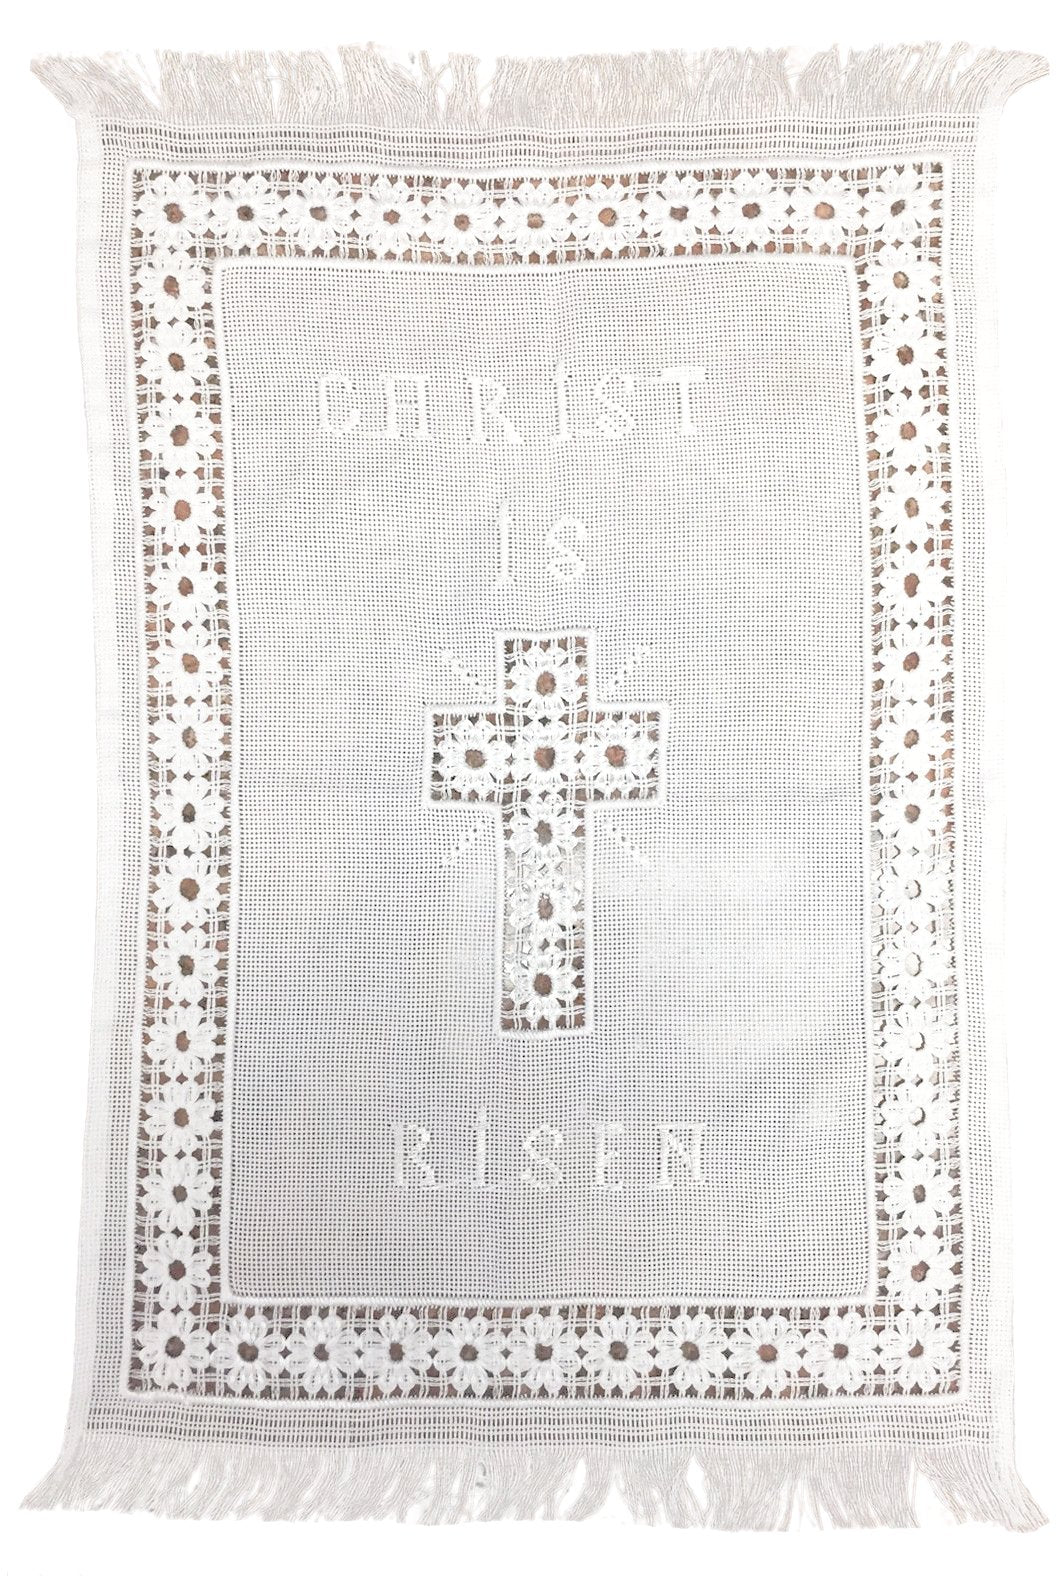 Pascha Basket Cover - Holy Cross Monastery